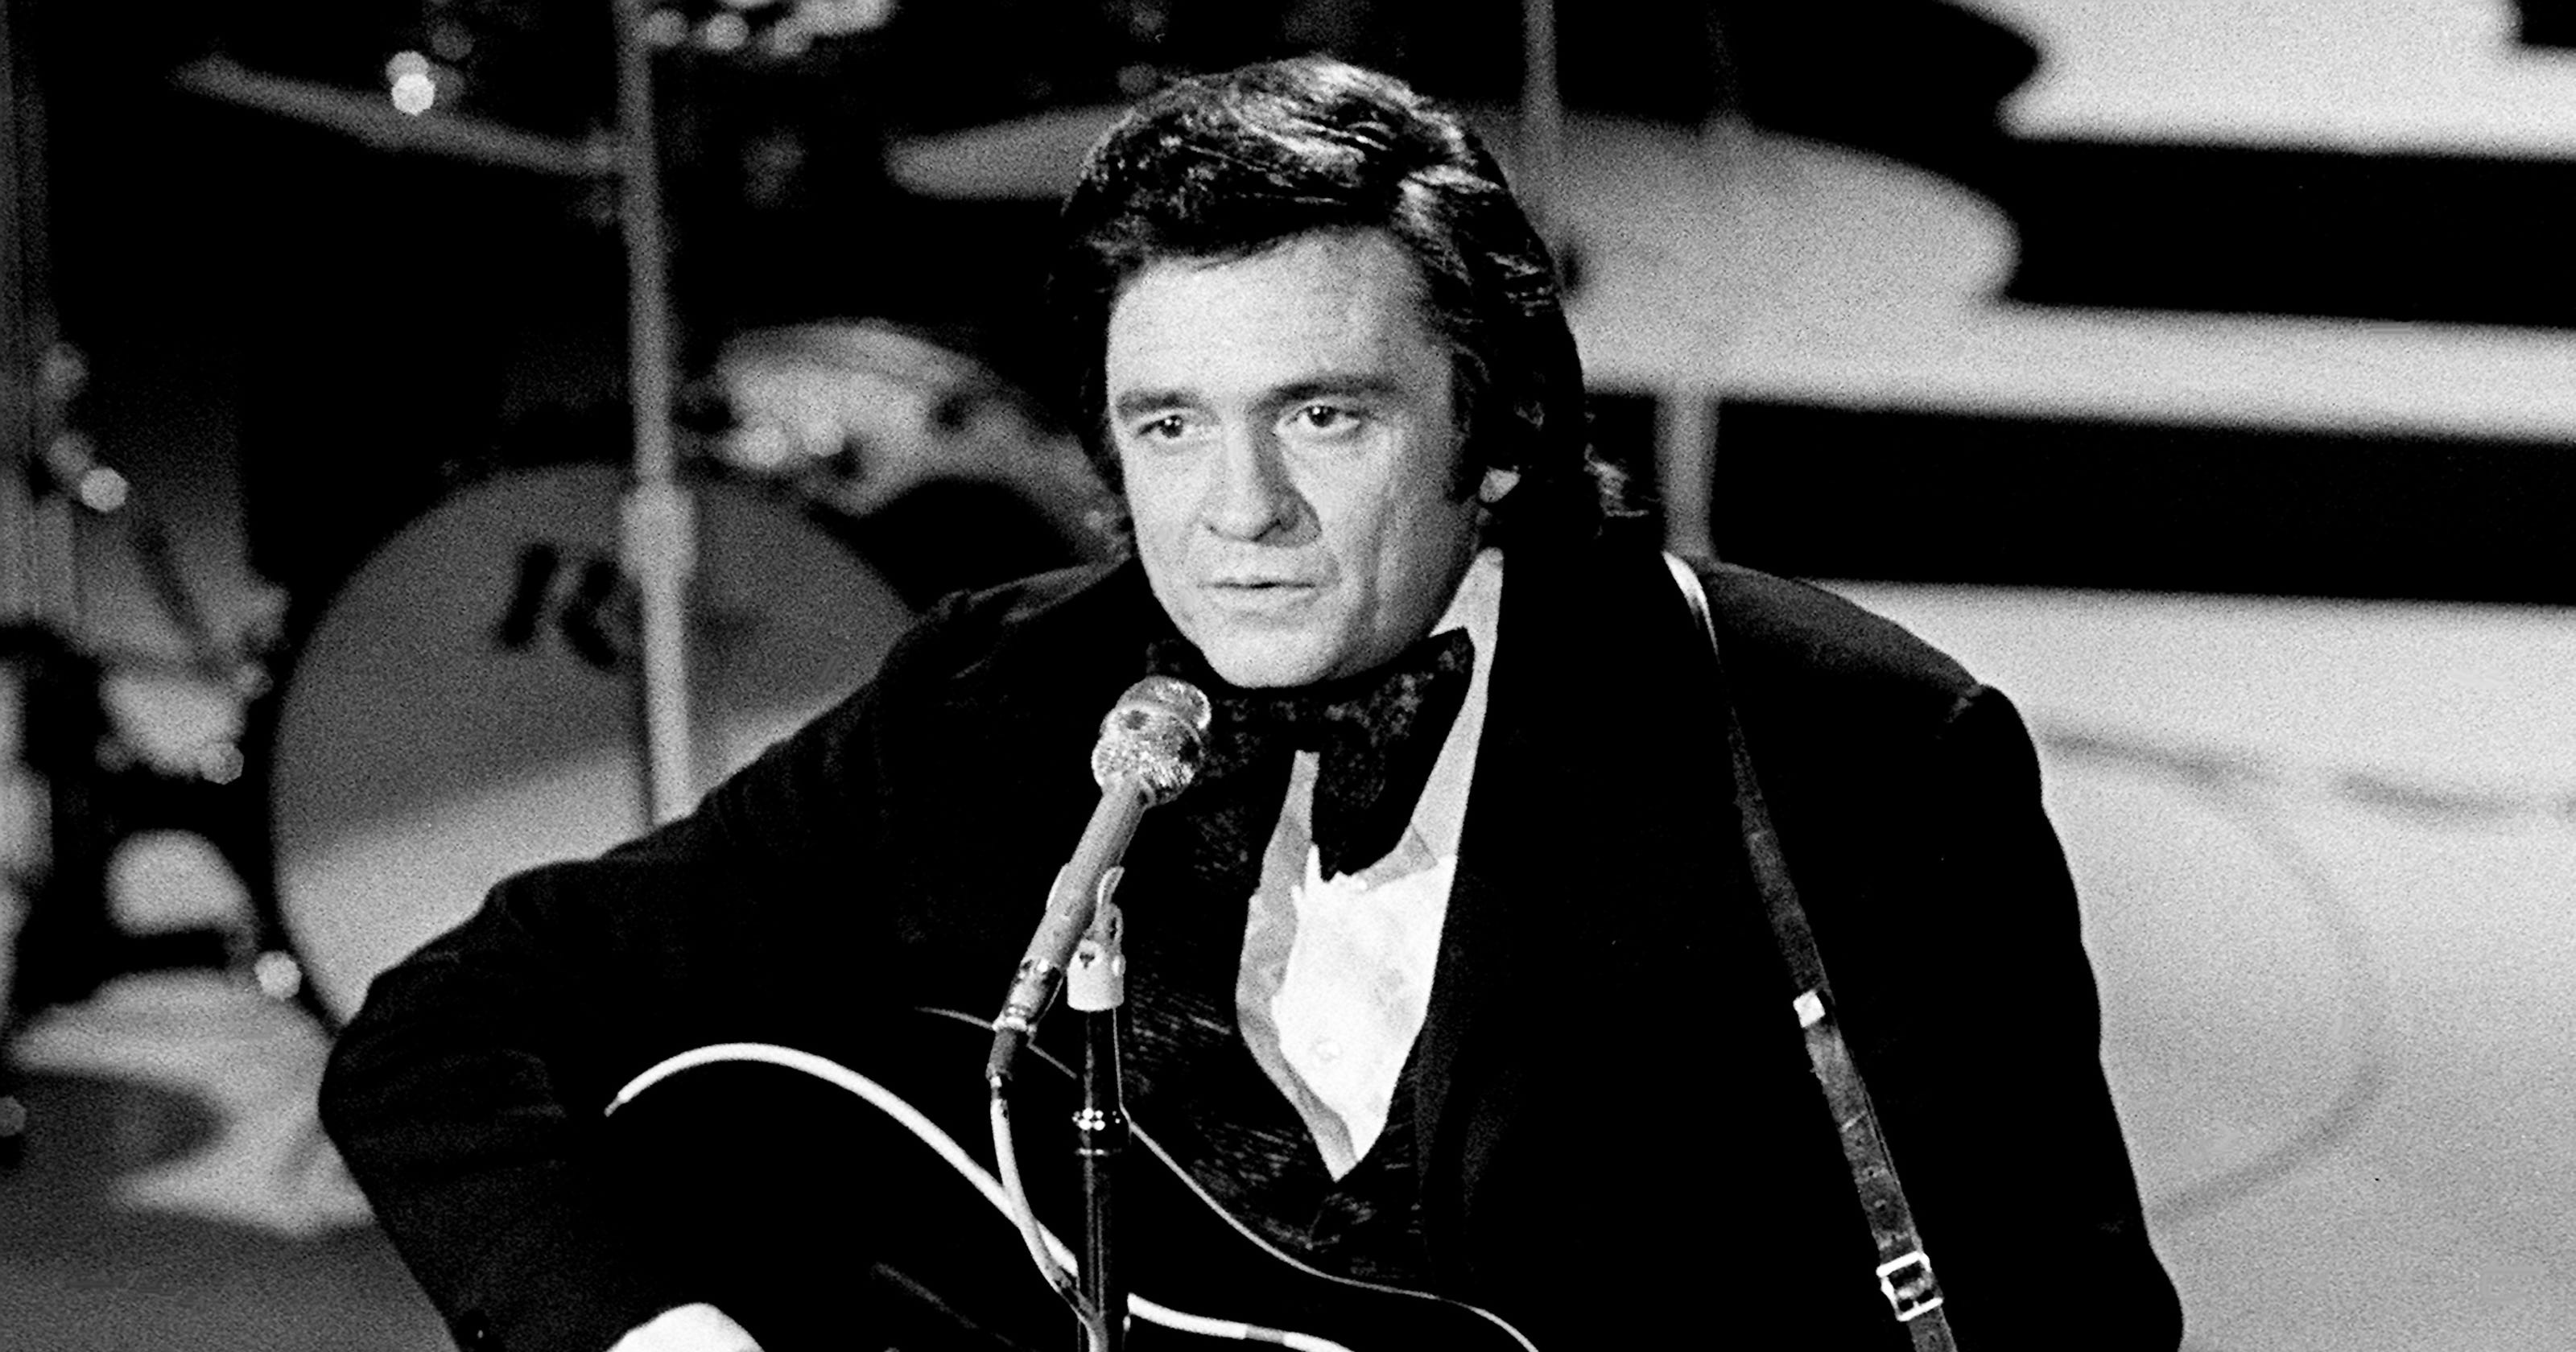 Need a crash course in country music history? Here's 100 years of trivia